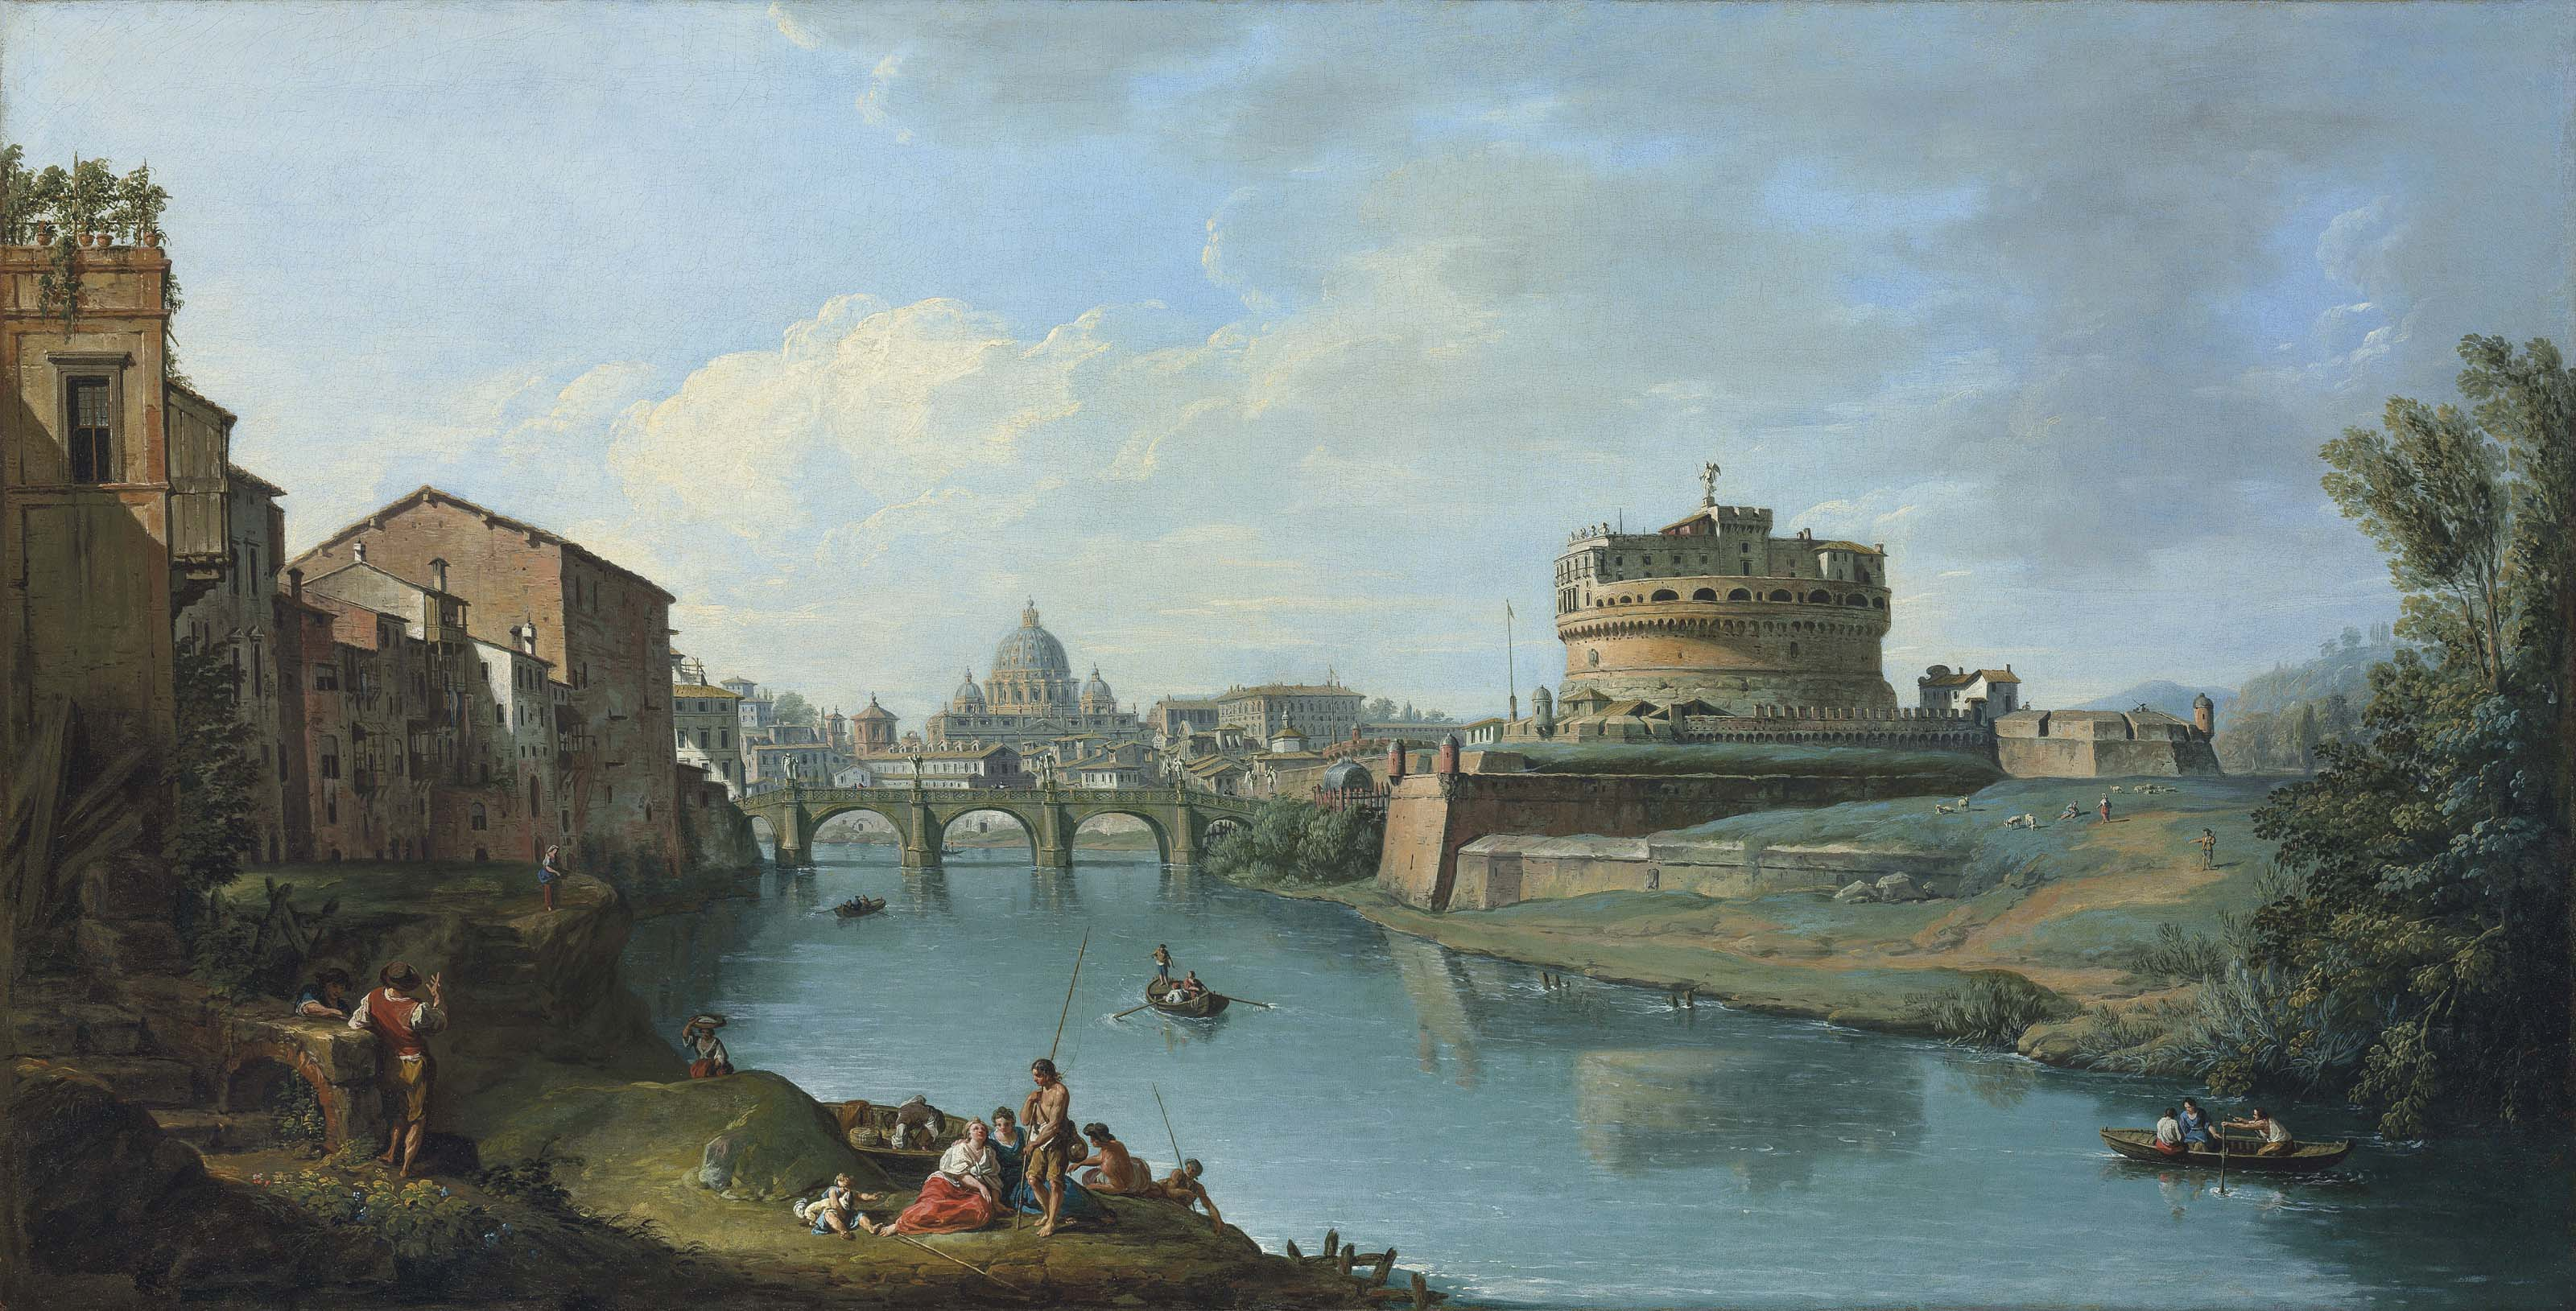 The Tiber River, Rome, looking towards the Castel Sant'Angelo, with Saint Peter's Basilica beyond